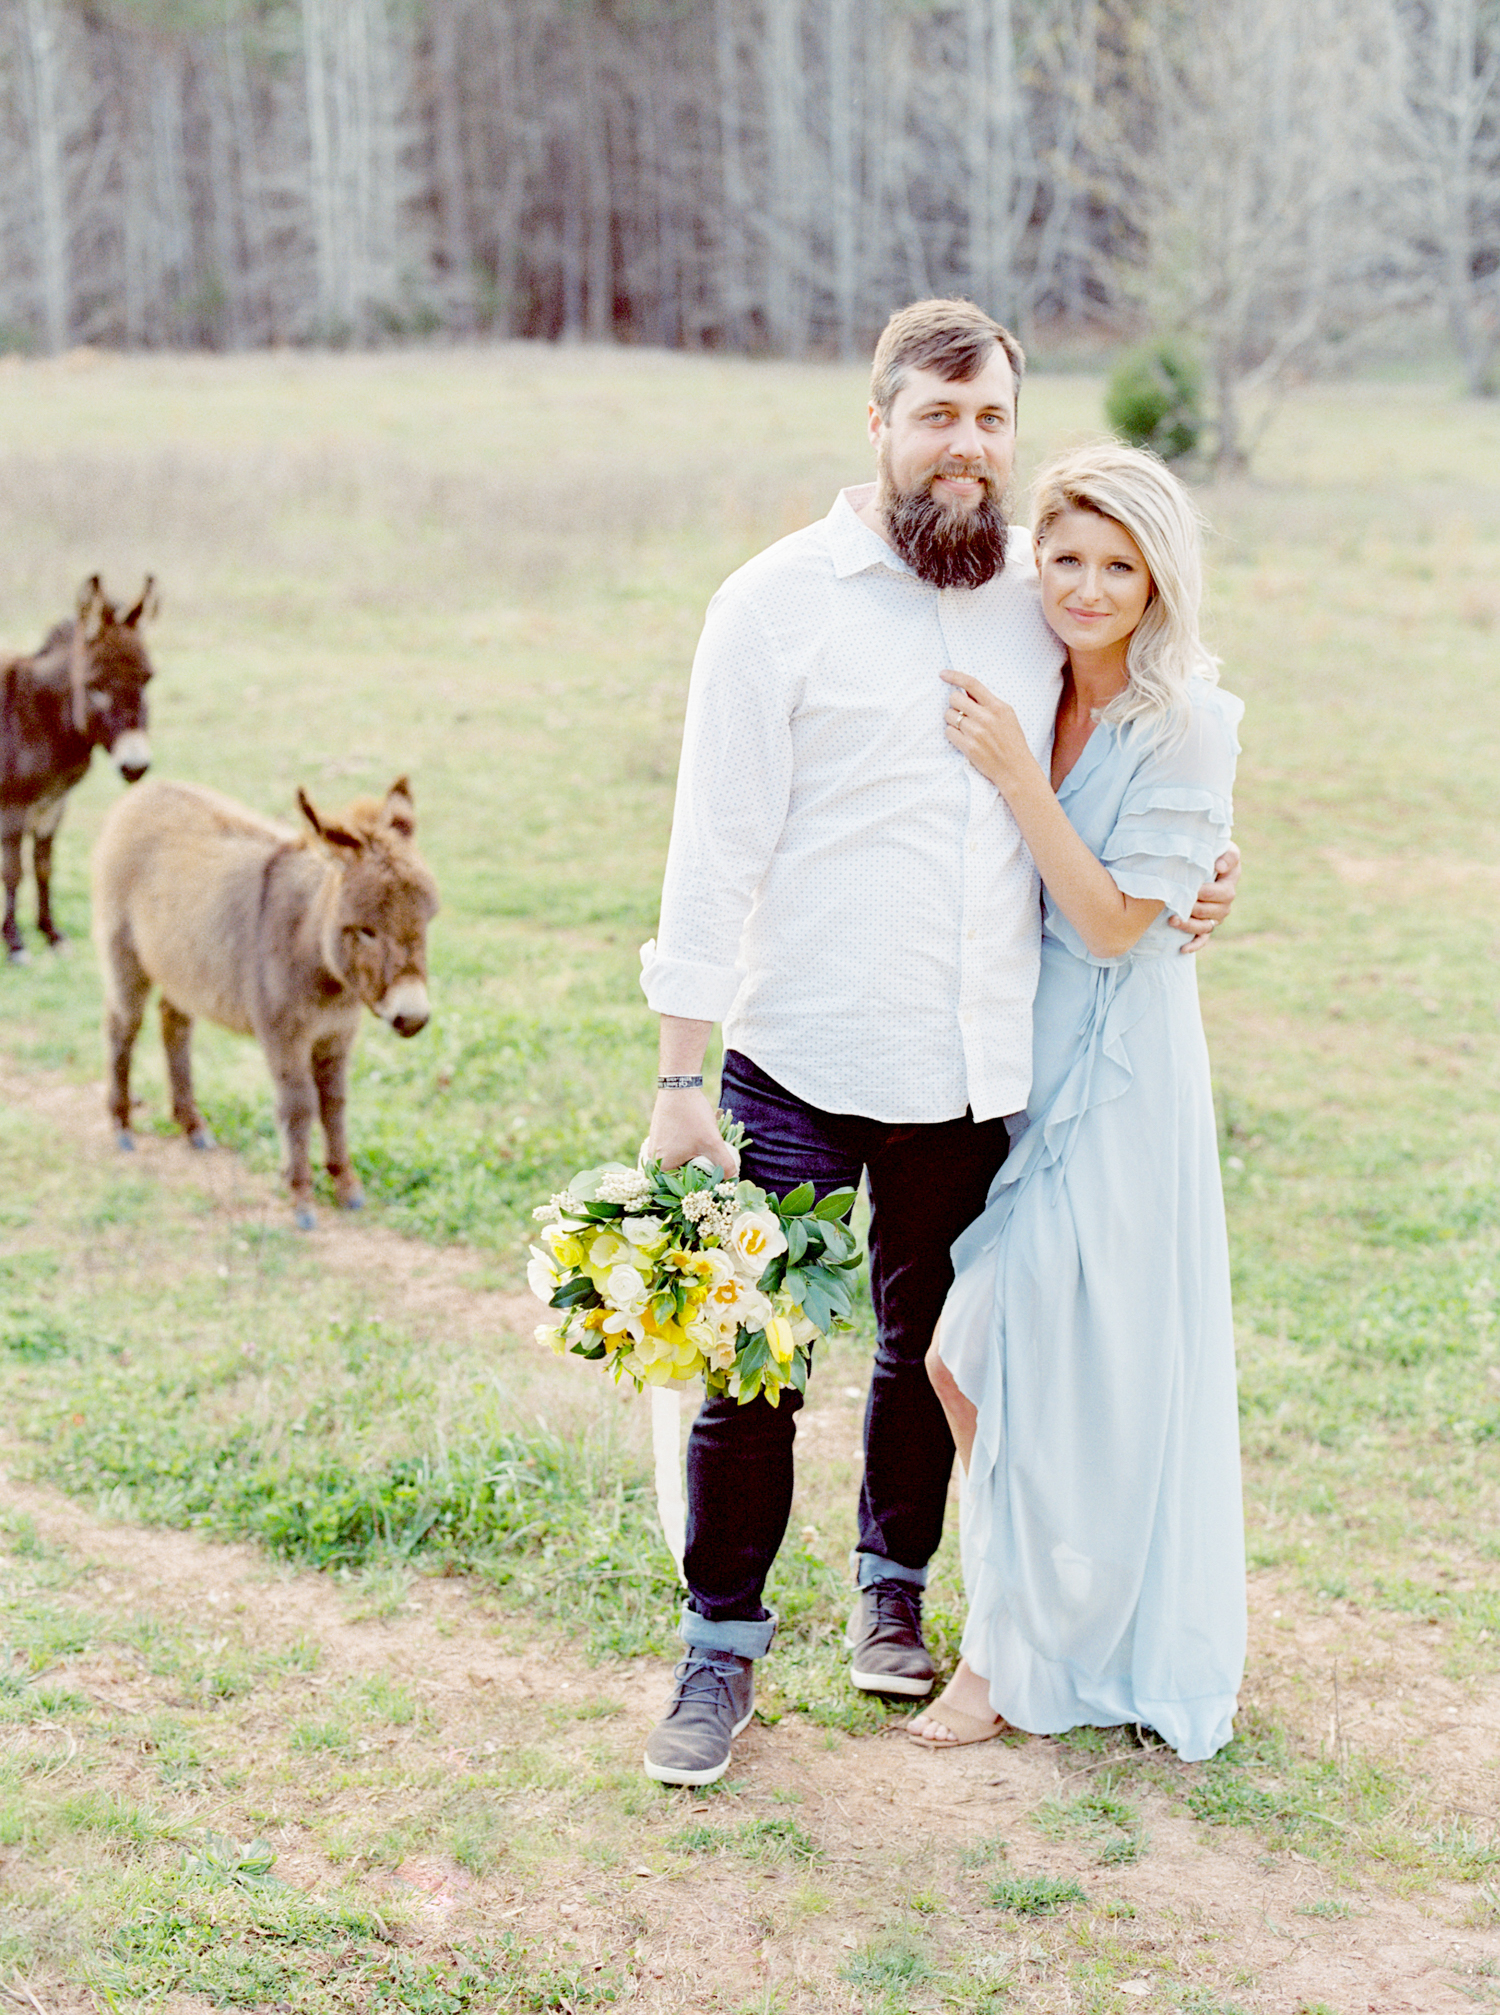 hannah forsberg atlanta wedding photographer whitney spence anniversary session with miniature donkeys and horse-29.jpg